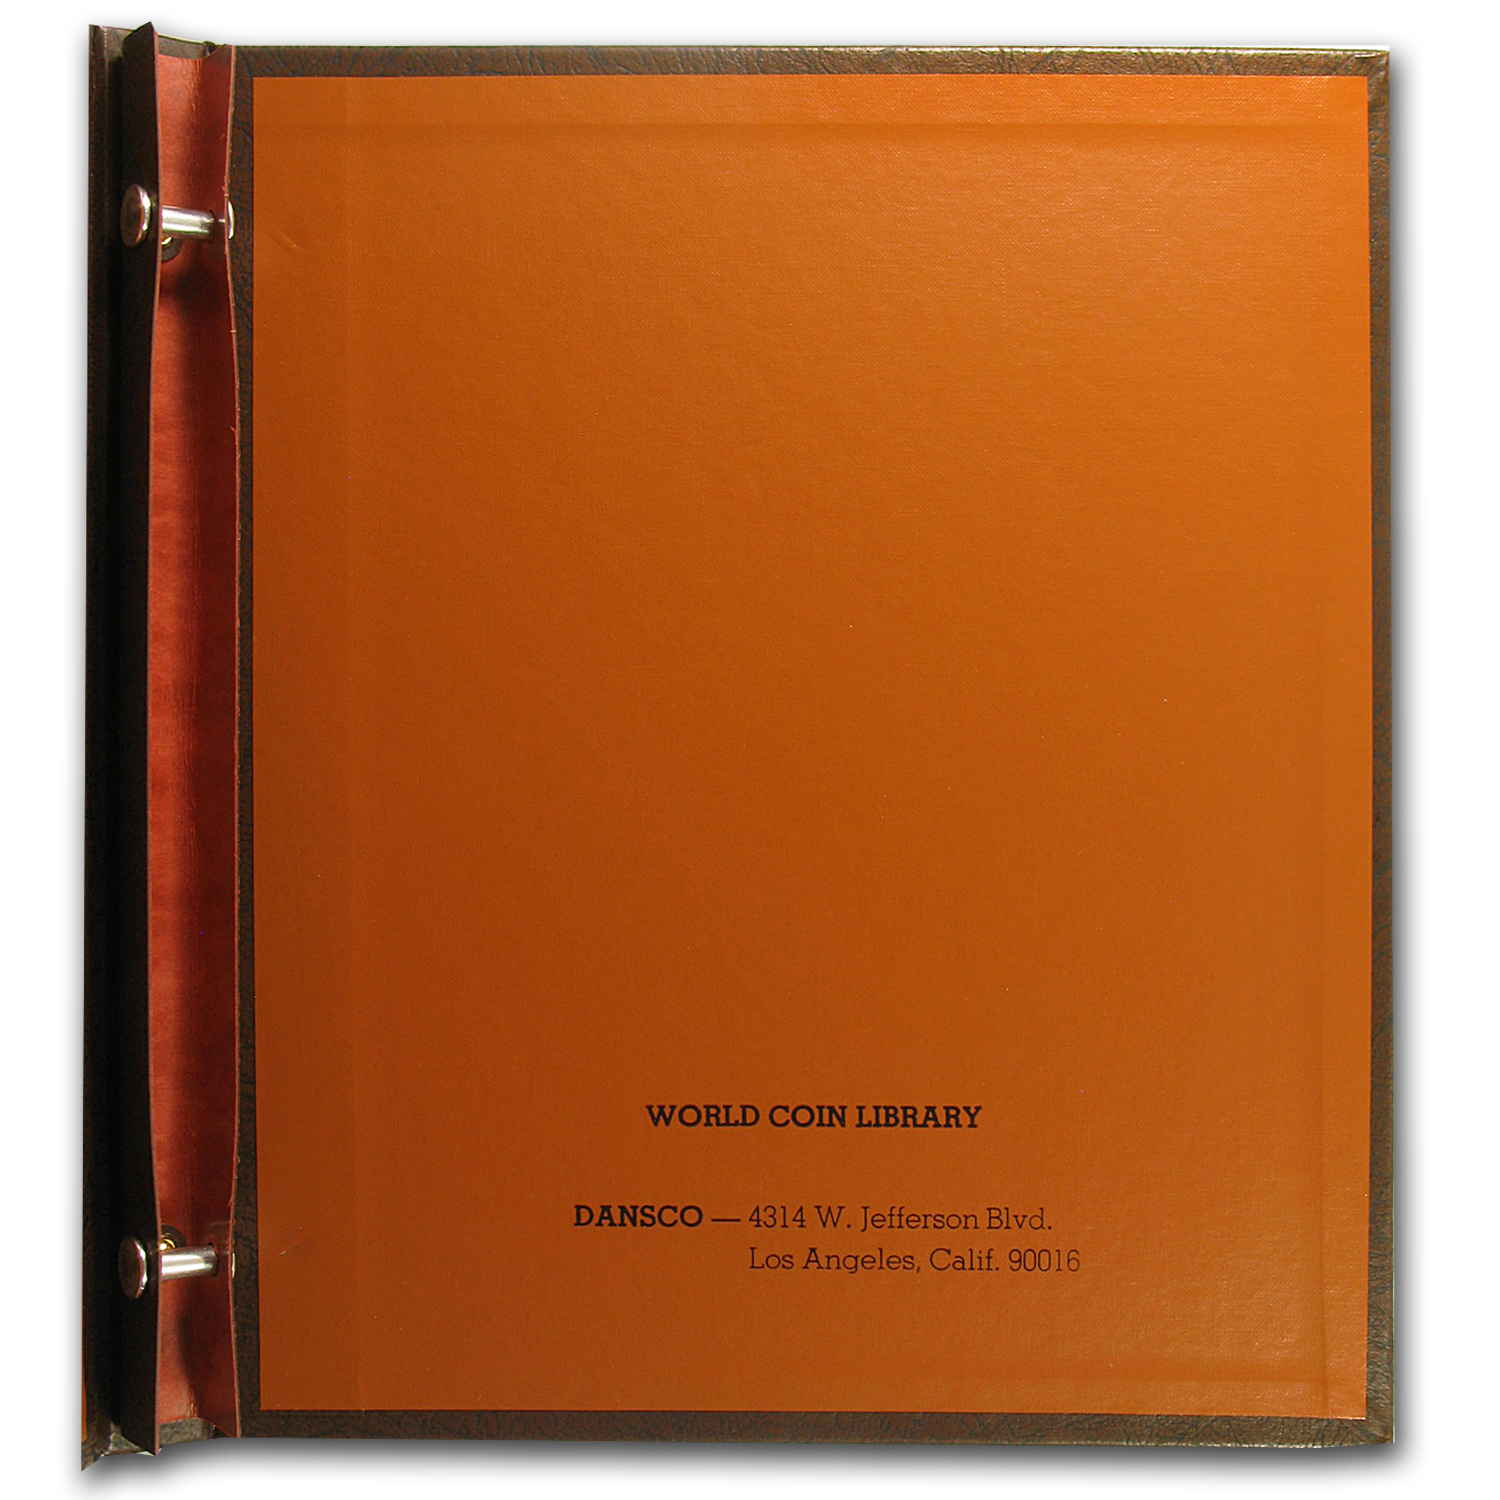 "Dansco Blank Binder - 5/8"" (2 - 4 Pages)"